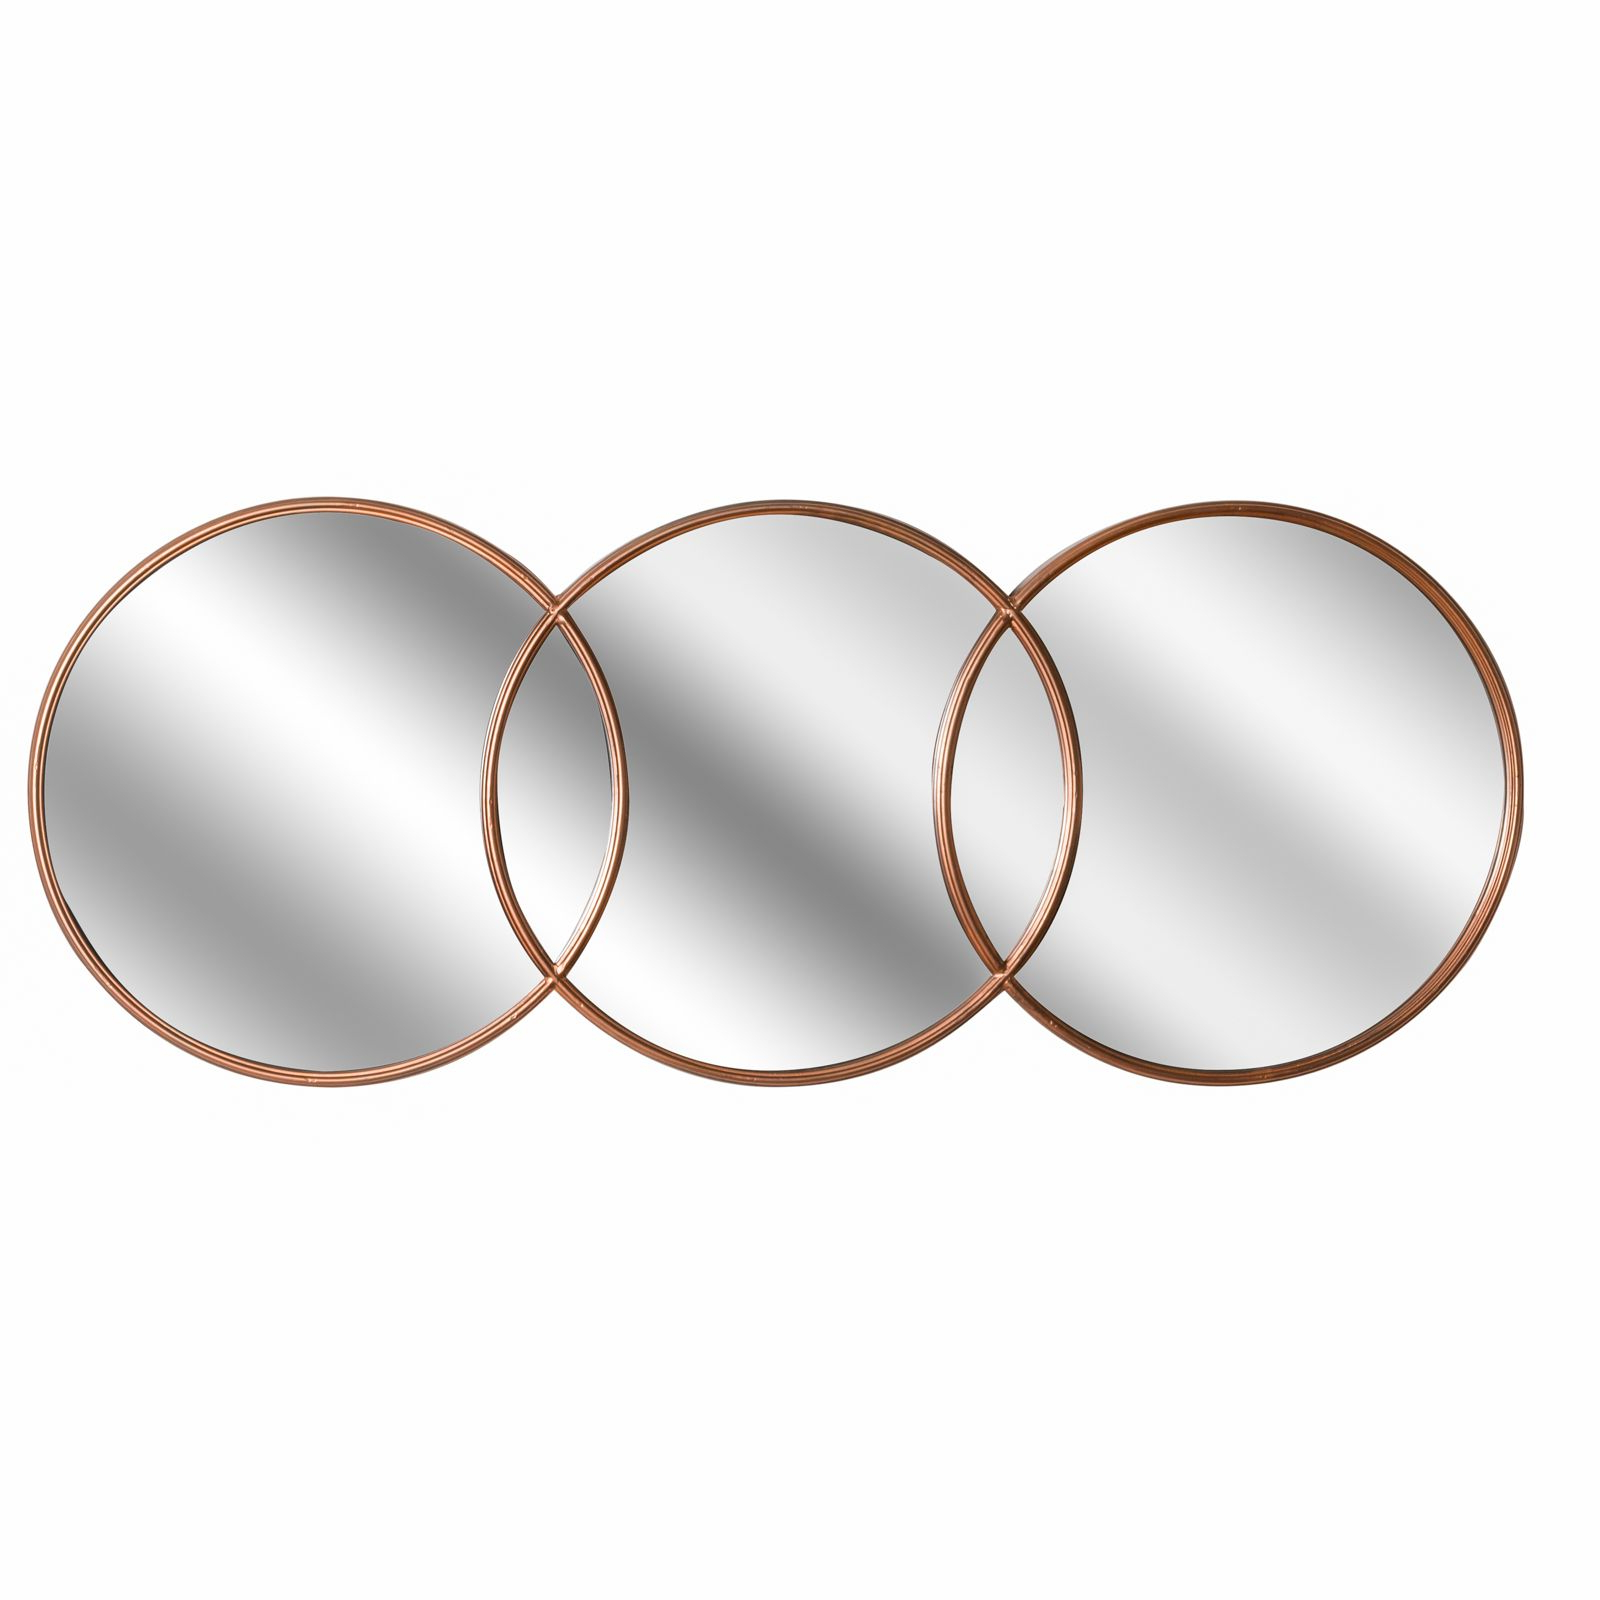 Copper Effect Triple Hanging Round Mirror Inside Widely Used Triple Oval Wall Mirrors (View 5 of 20)